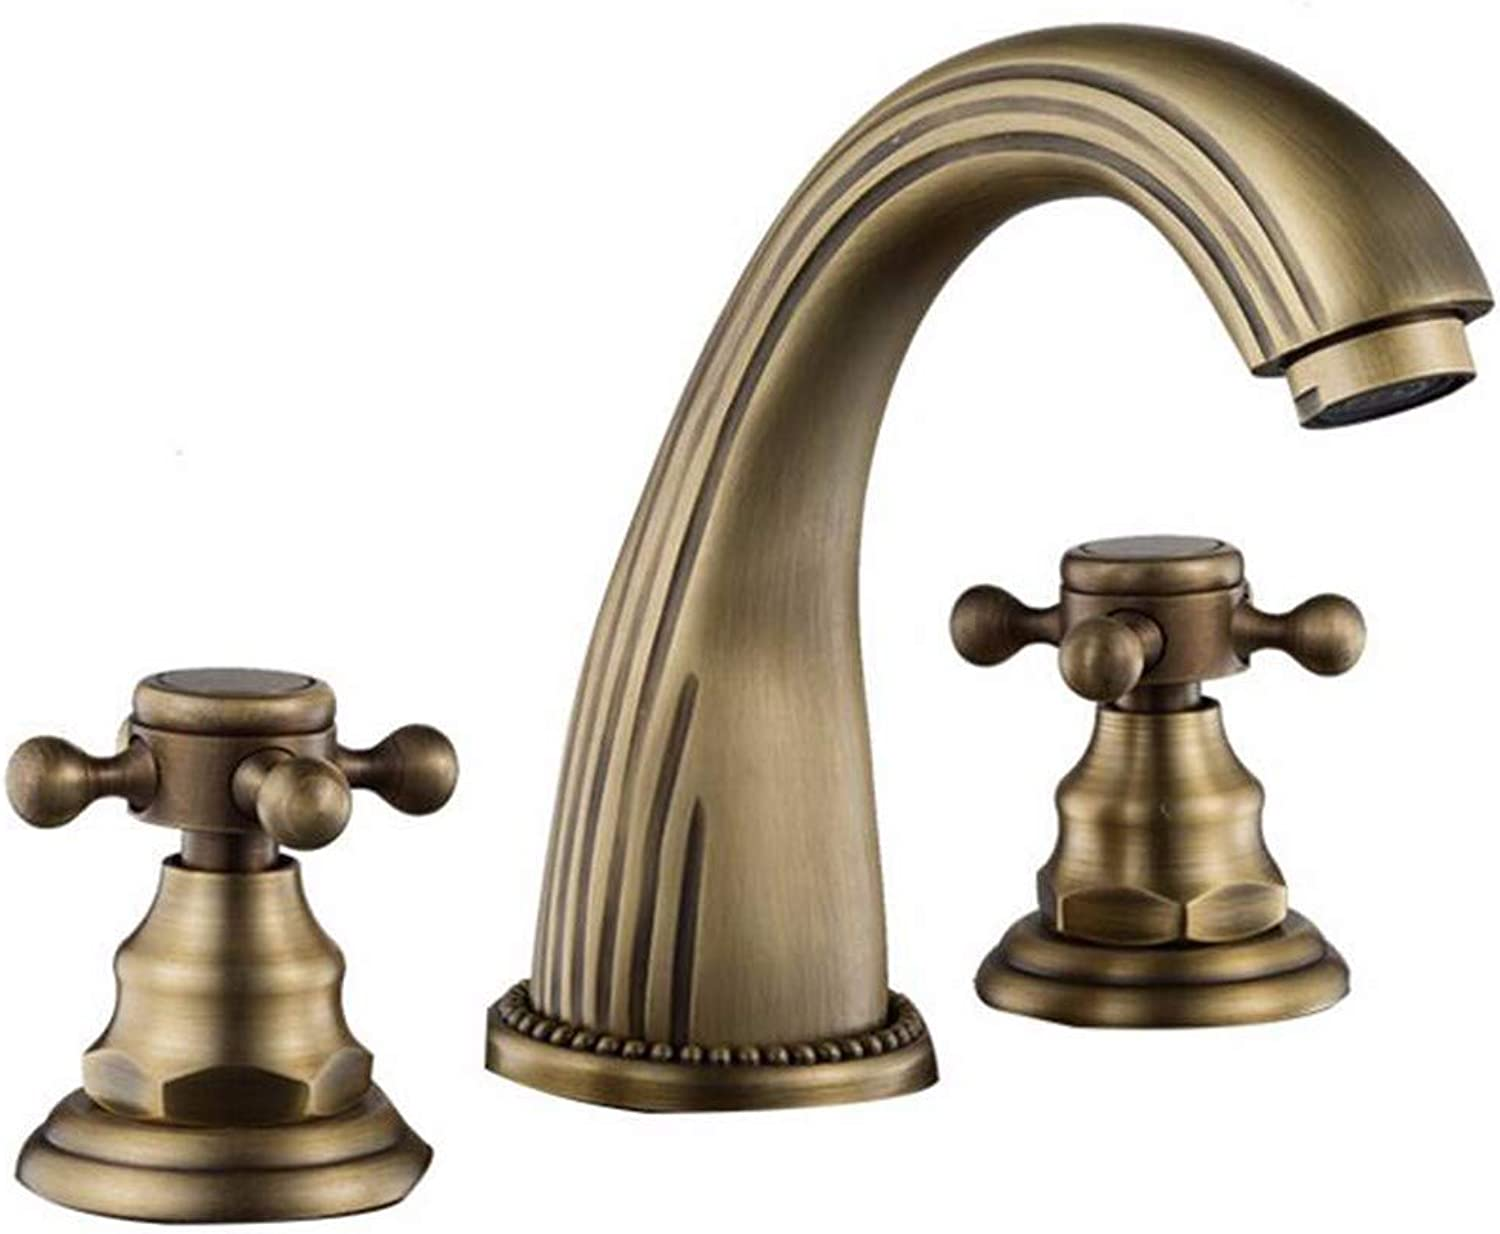 Bathroom Antique Full Brass Basin Three Hole Split Three Piece Faucet Hot And Cold Water Mixing Faucet